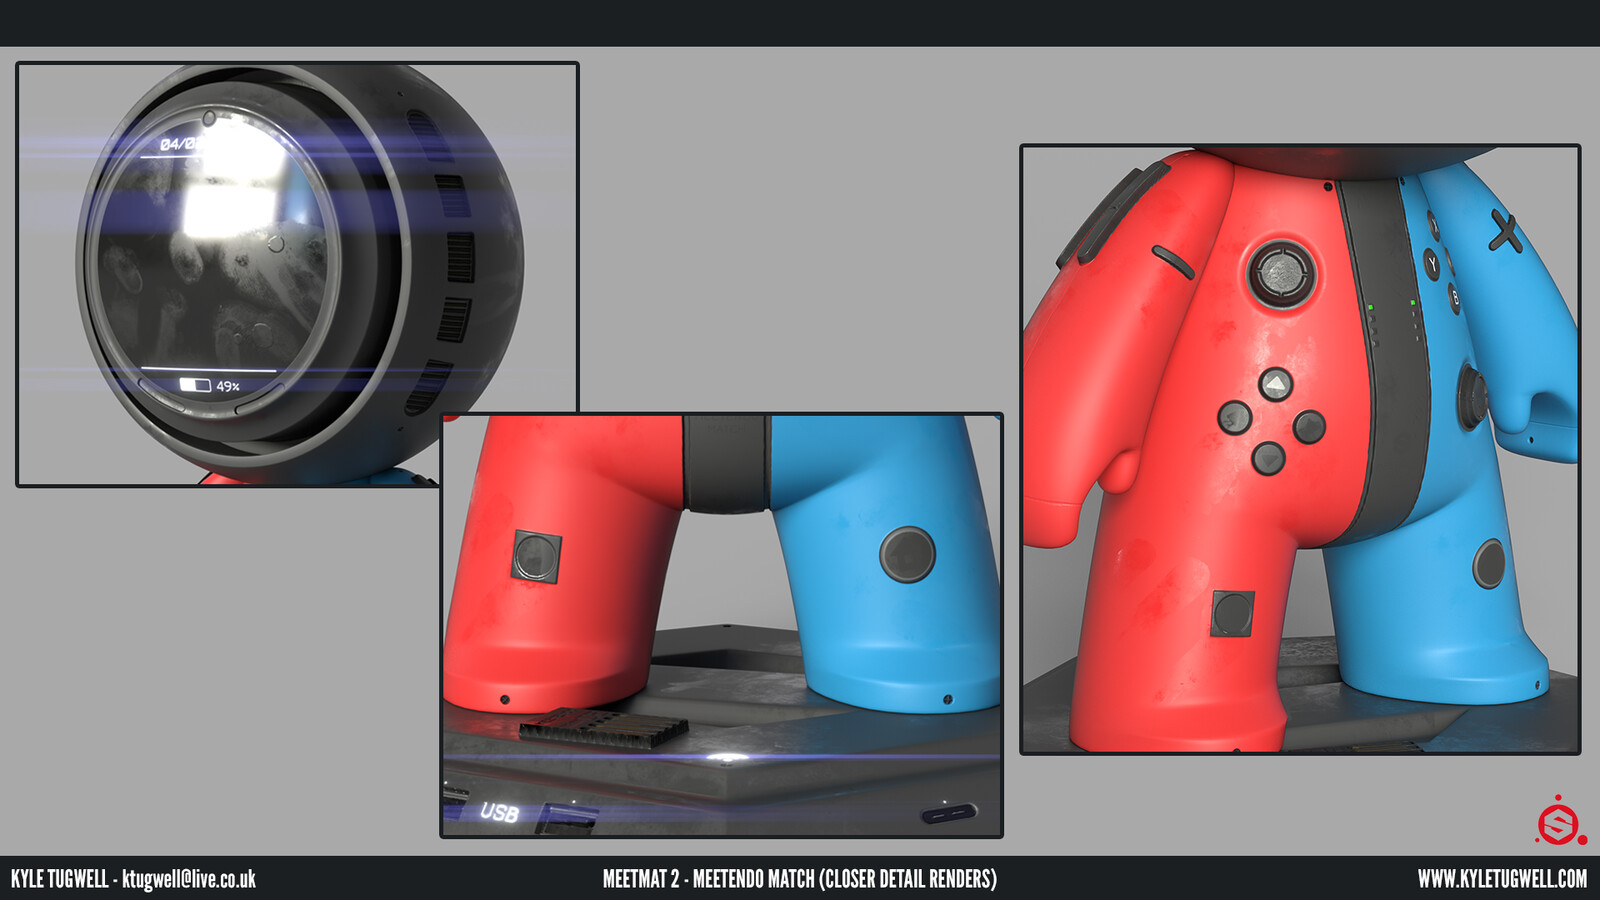 These closer renders allow you to see the details on the buttons, bumpers, screen etc. which have been incorporated to further promote the realistic elements of this entry.